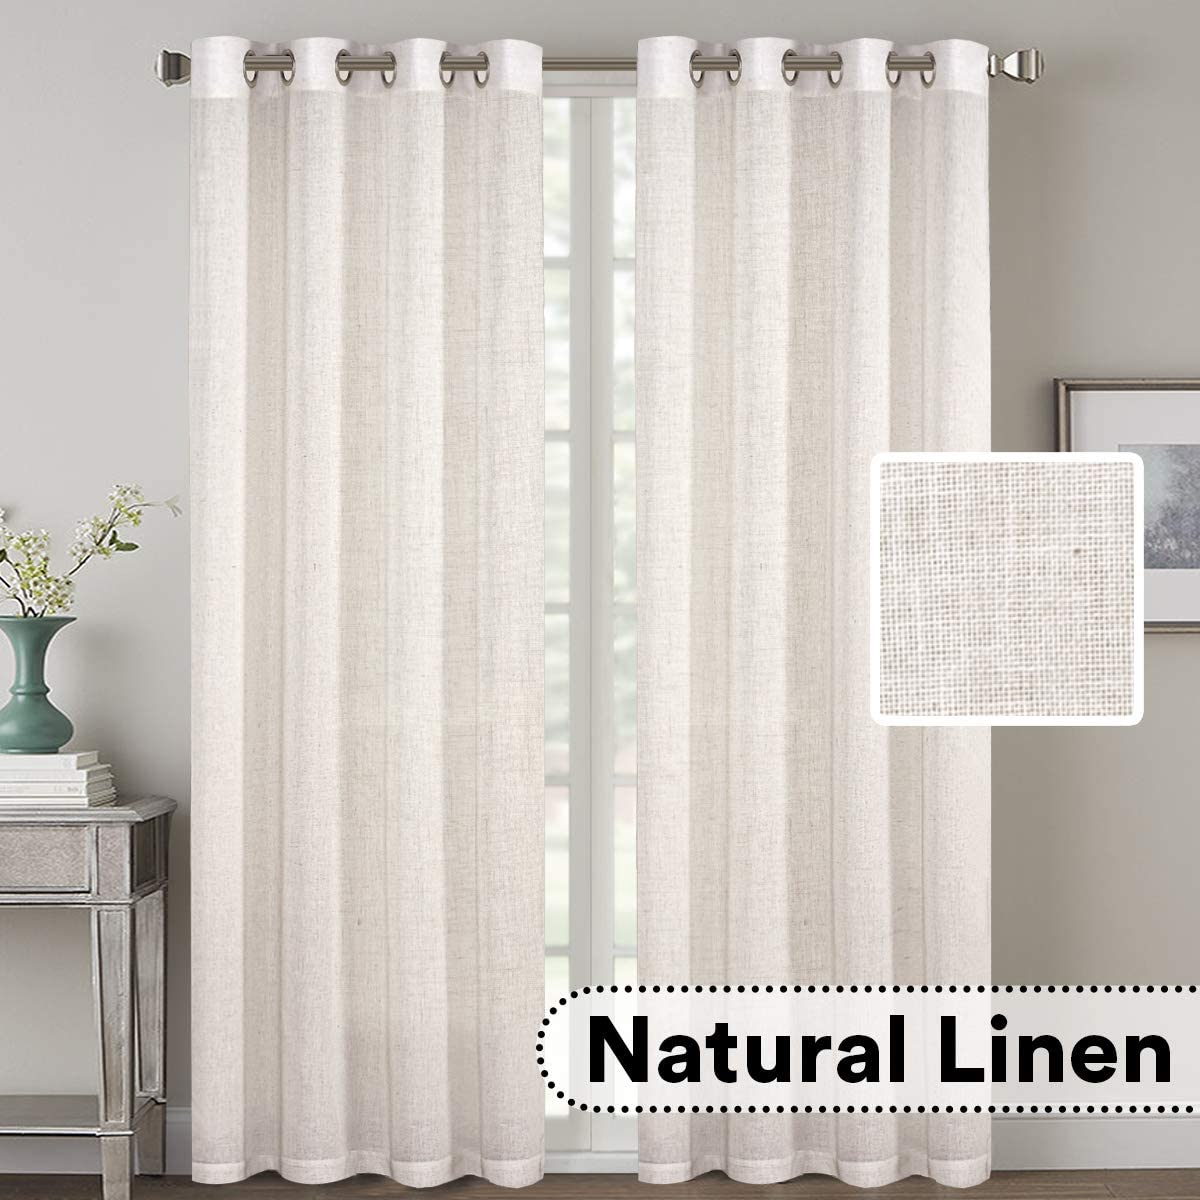 H.VERSAILTEX 2 Pack Ultra Luxurious High Woven Linen Elegant Curtains Grommet Curtain Panels Light Reducing Privacy Panels Drapes, Nickel Grommet, Extra Long 52×108-Inch, Natural